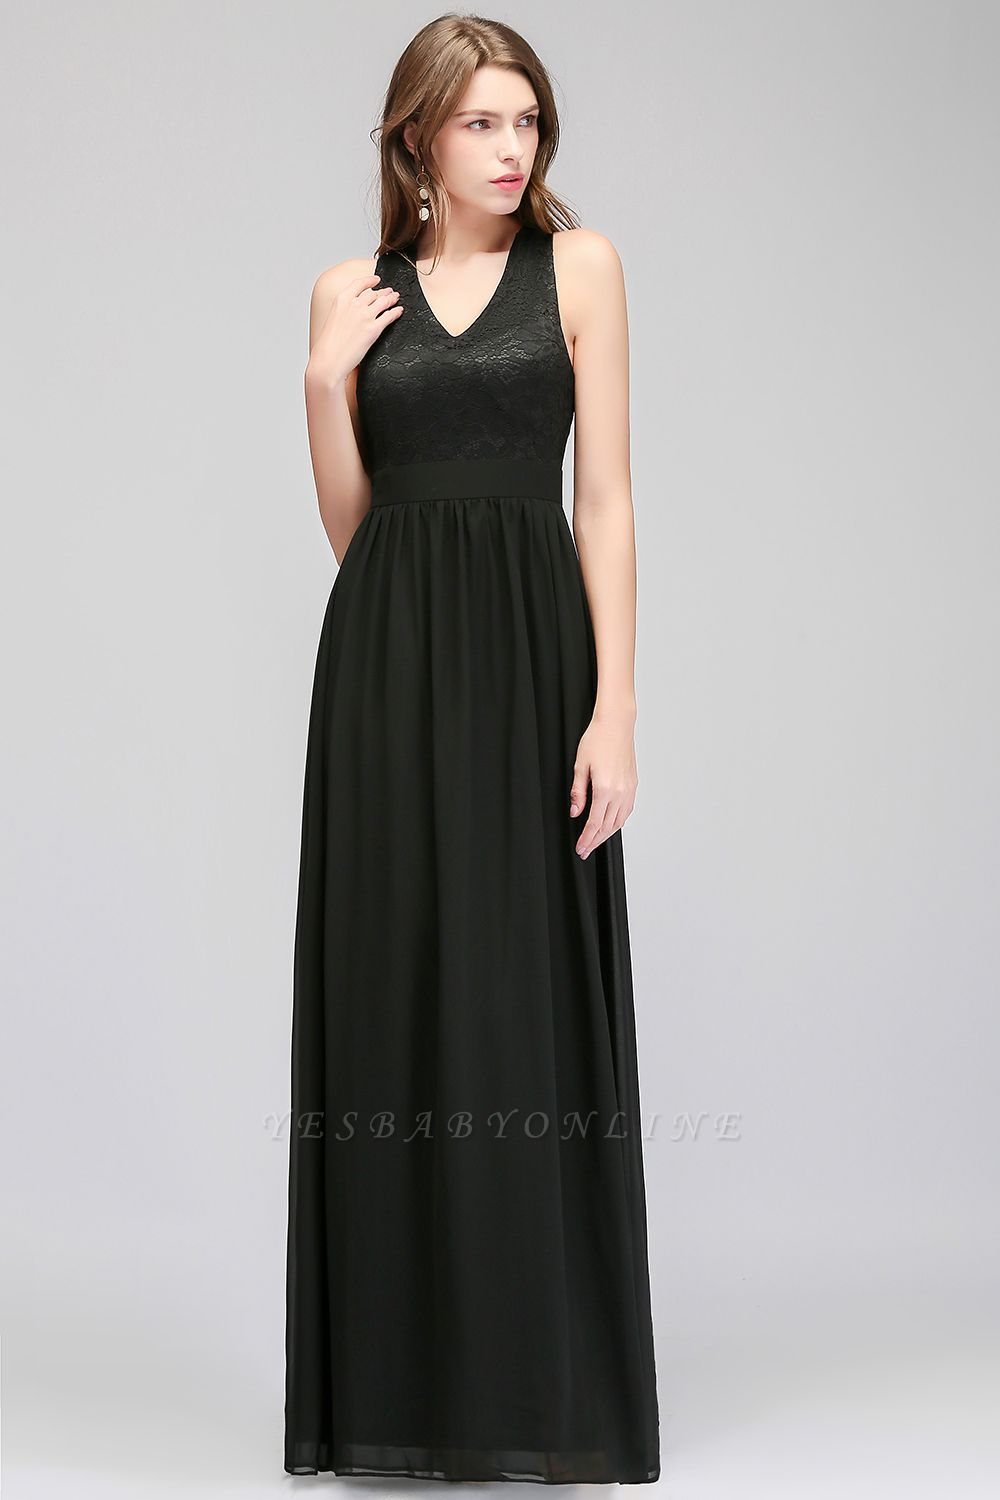 Crisscross Lace A-line  V-Neck Black Evening Dress